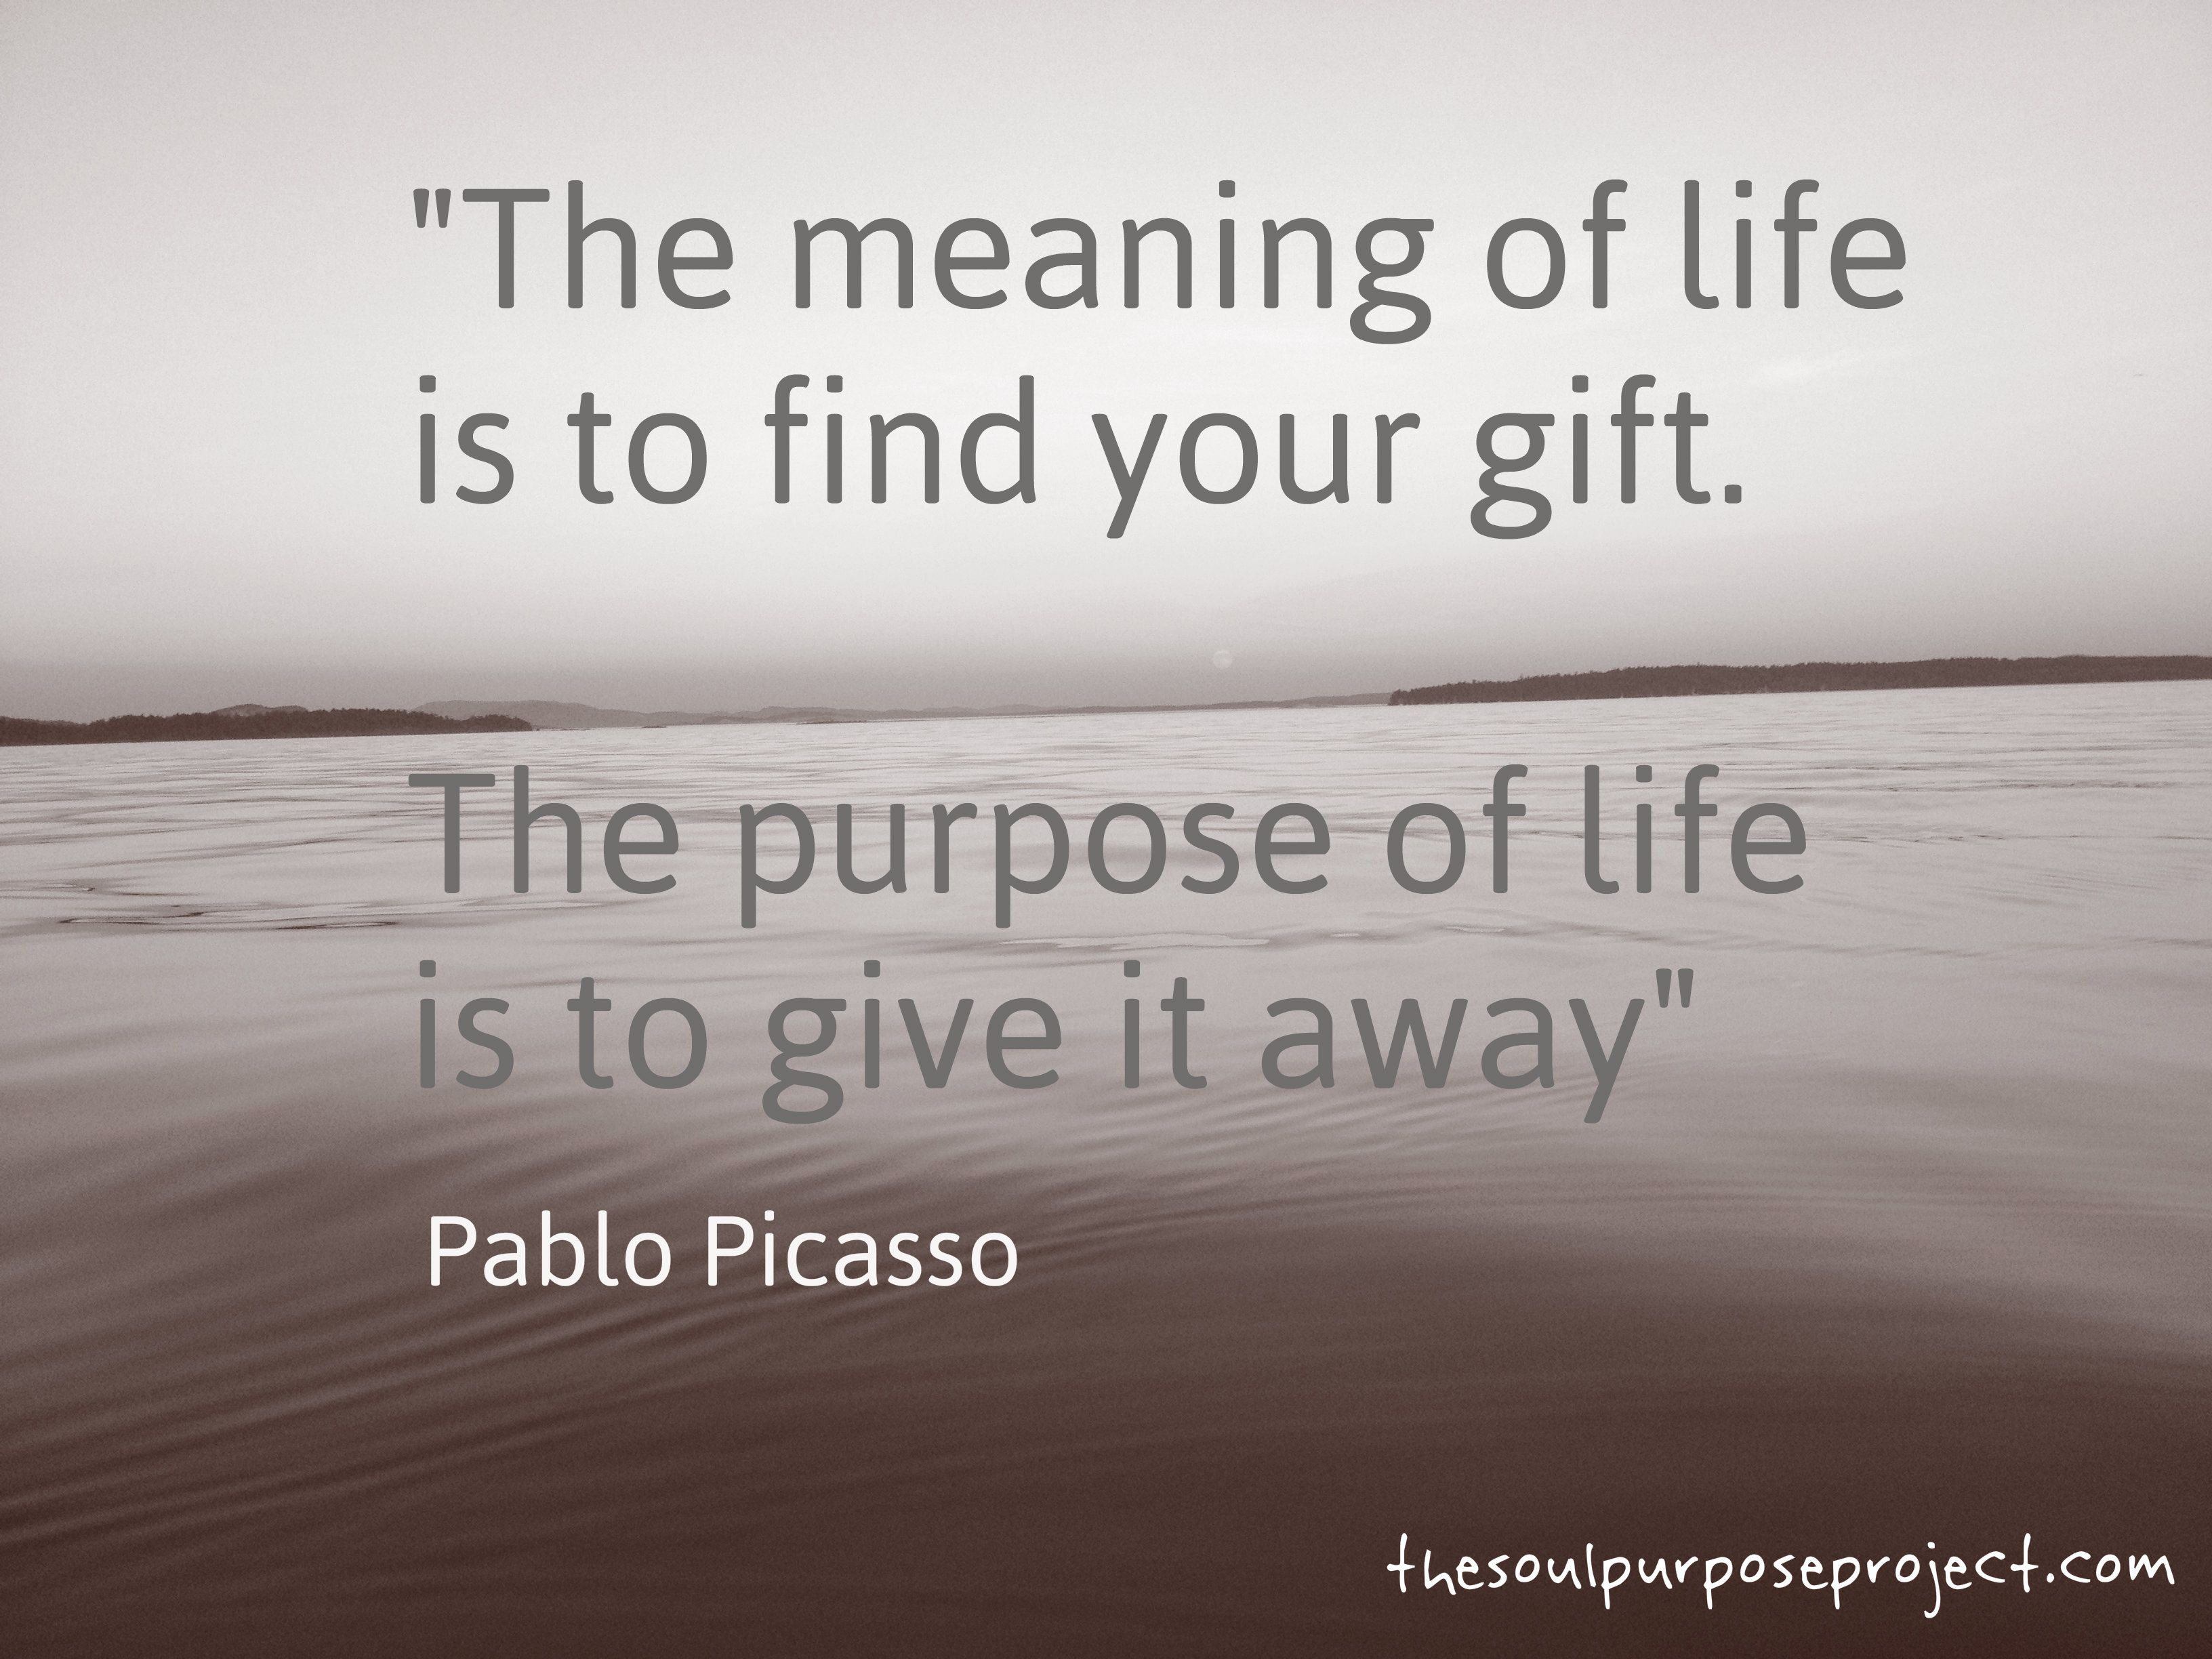 Some Great Quotes About Life Some Of Life's Greatest Rewards Come From Serving Others What's